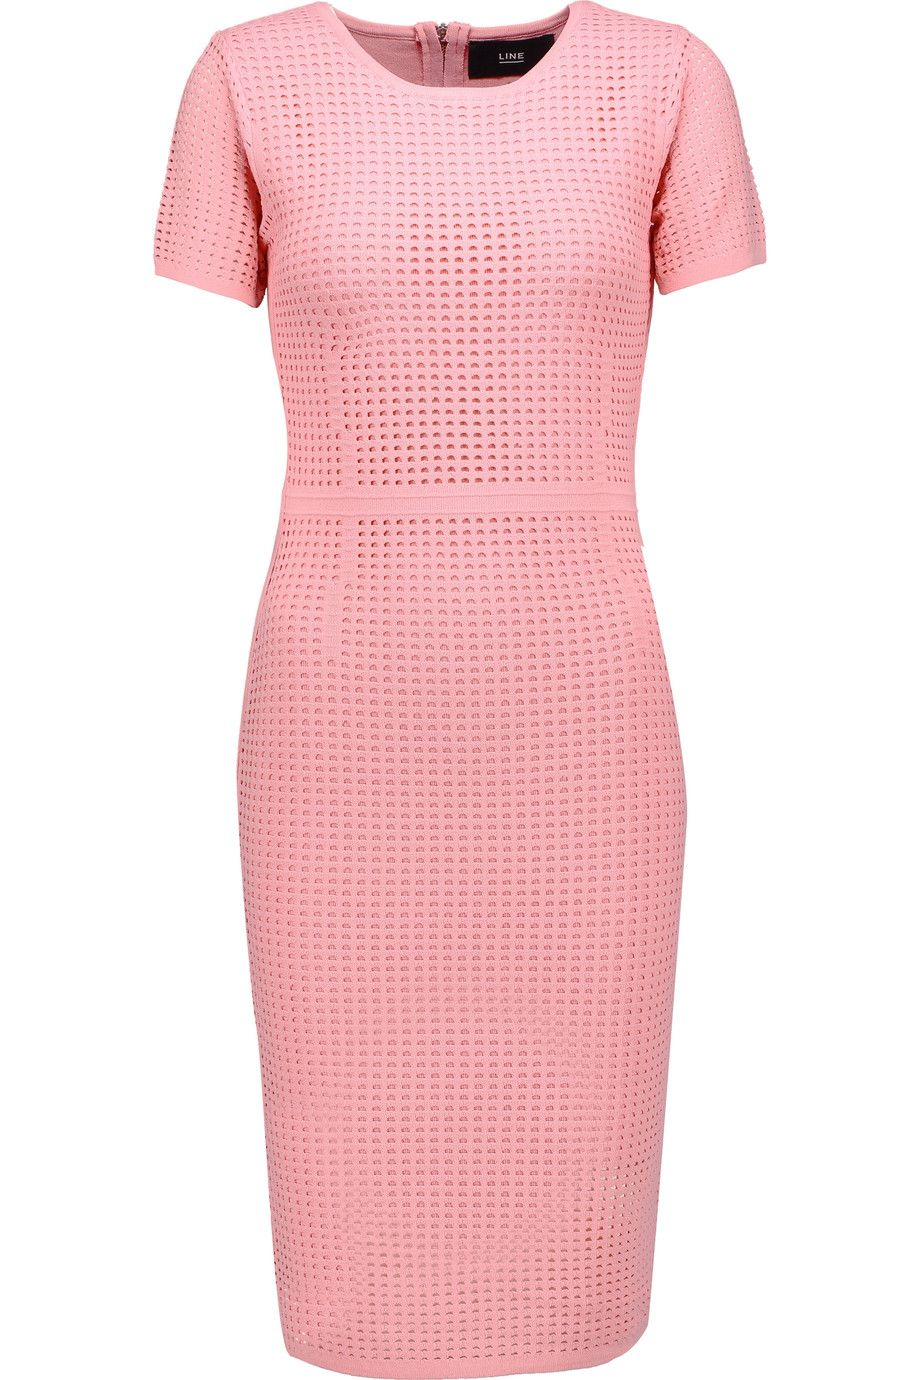 Pink sweater dress outfit  LINE Joyce OpenKnit Dress line cloth dress  Pretty In Pink